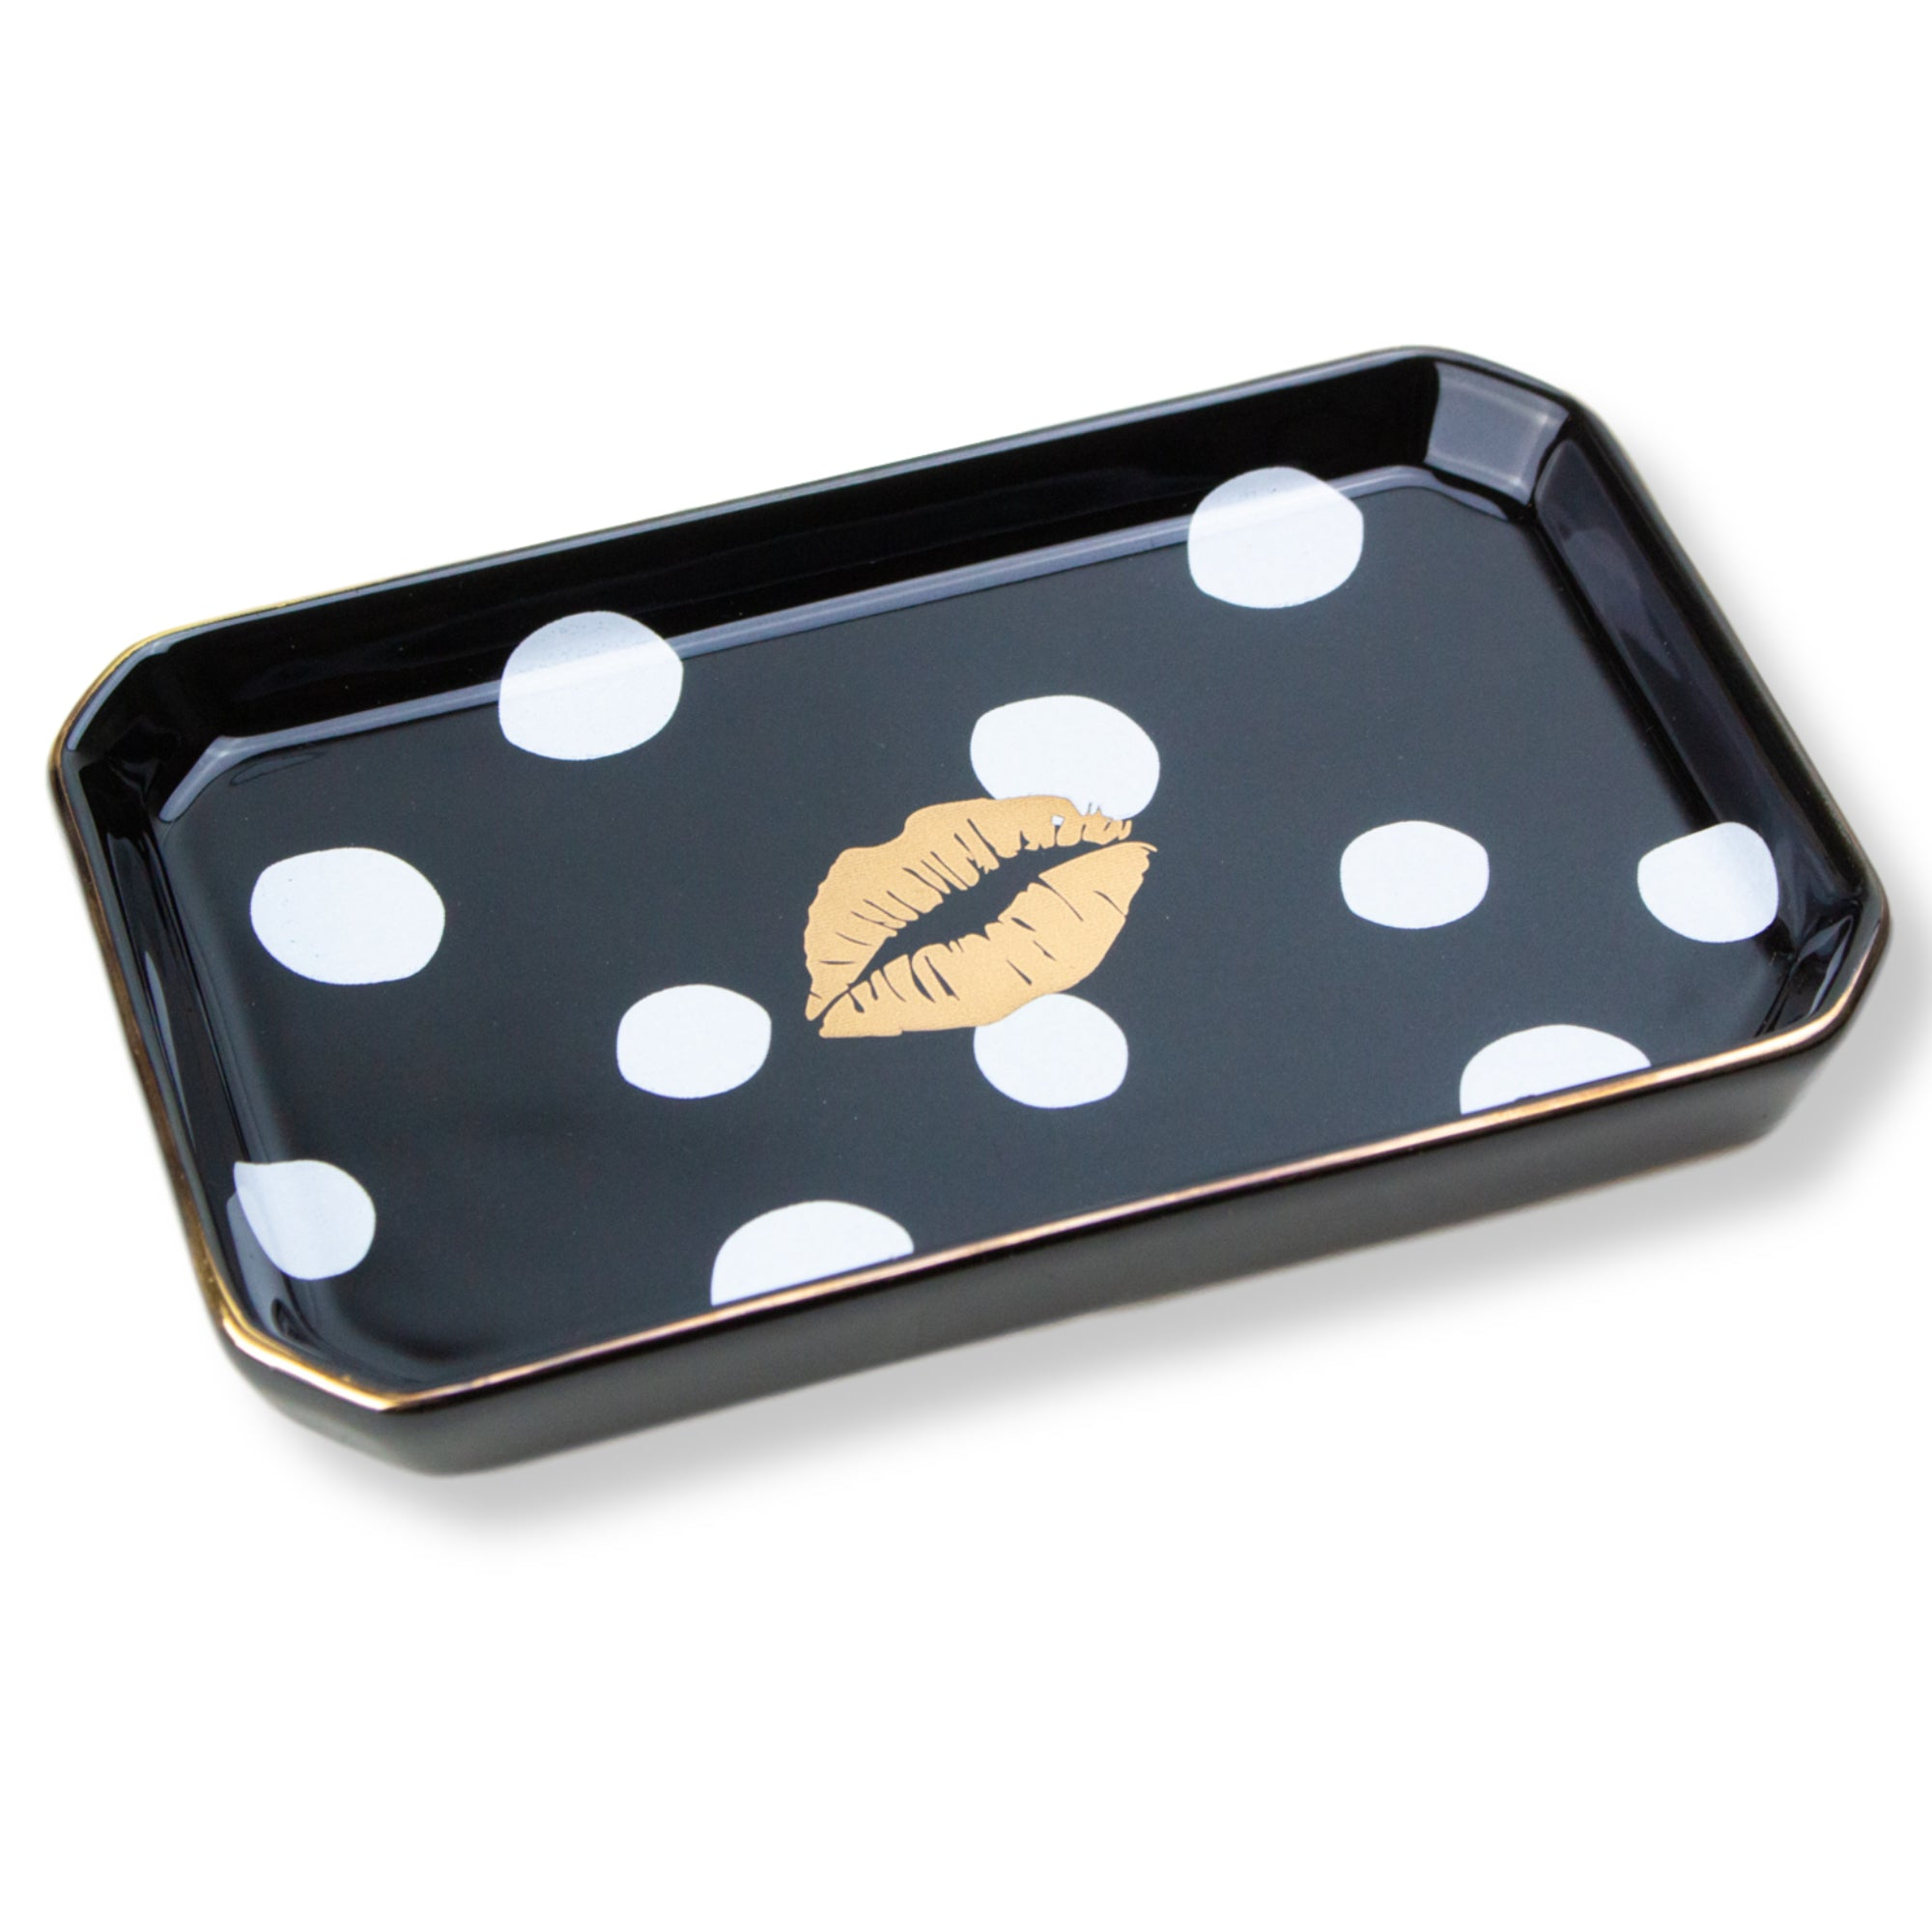 'Kiss' Porcelain Trinket Tray